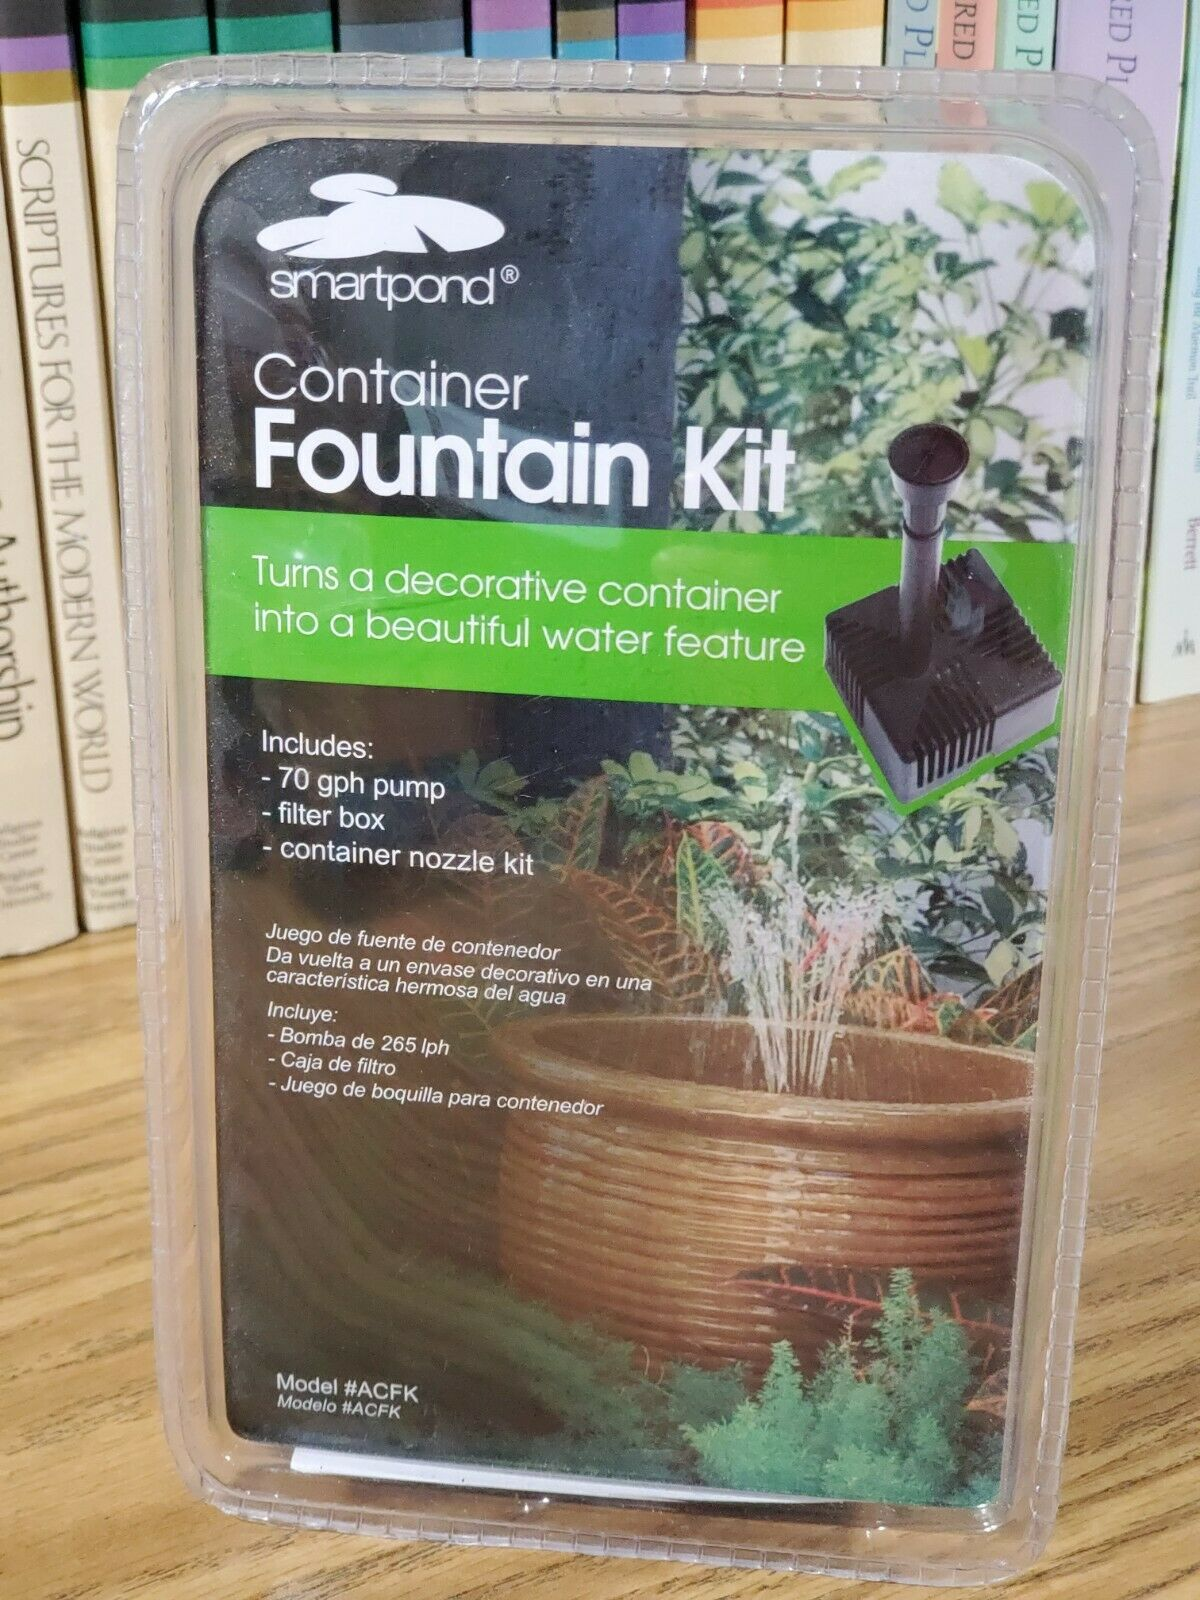 smartpond Container Fountain Kit w 70 GPH pump, filter box, container nozzle kit